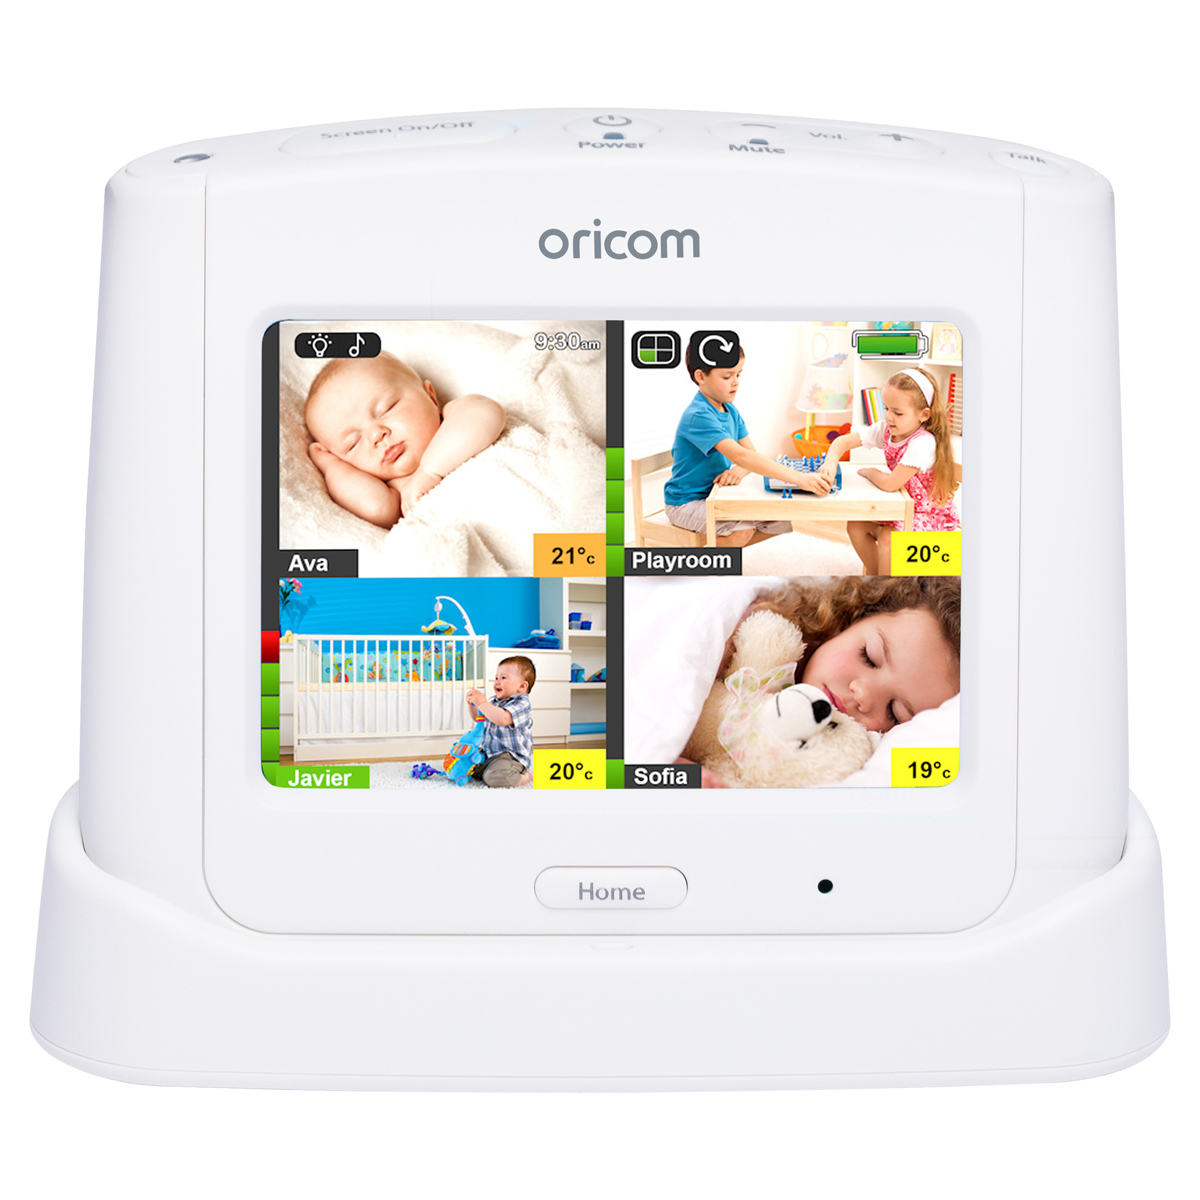 Oricom: Secure870 3.5″ Touchscreen Video Monitor with Starry Lightshow - White image